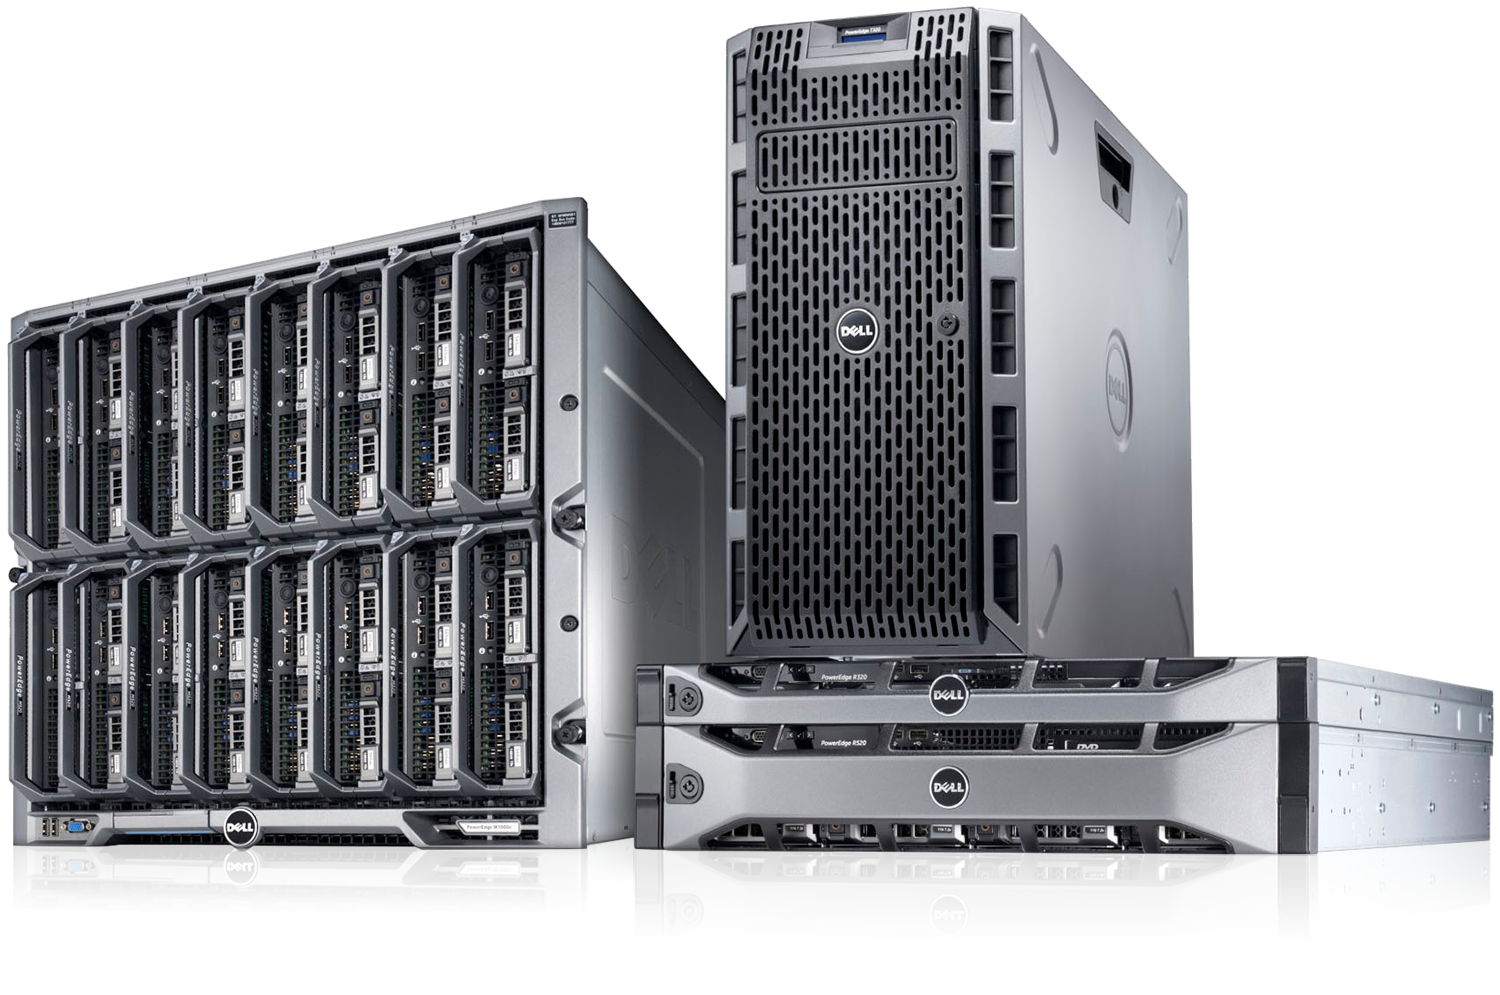 dell-server-png